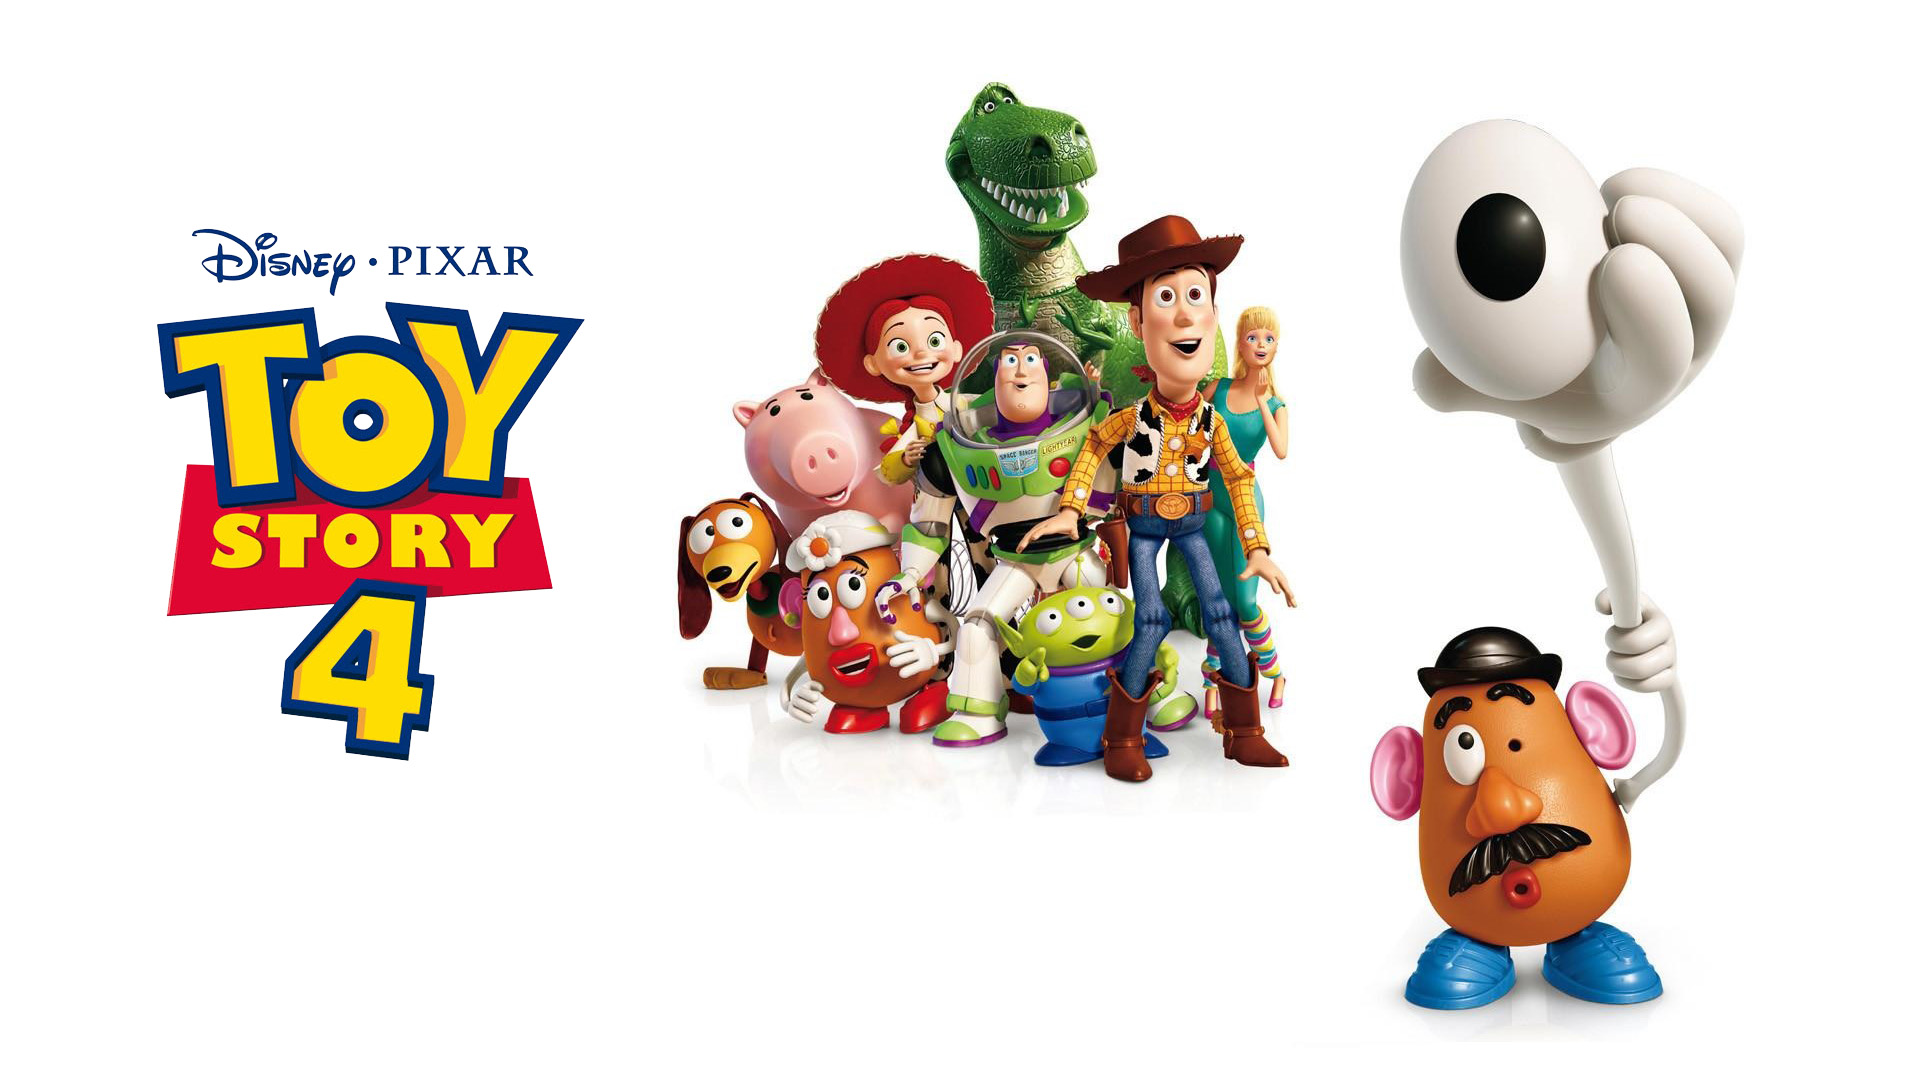 Toy Story 4- Release Date Cast Trailer Characters And Plot